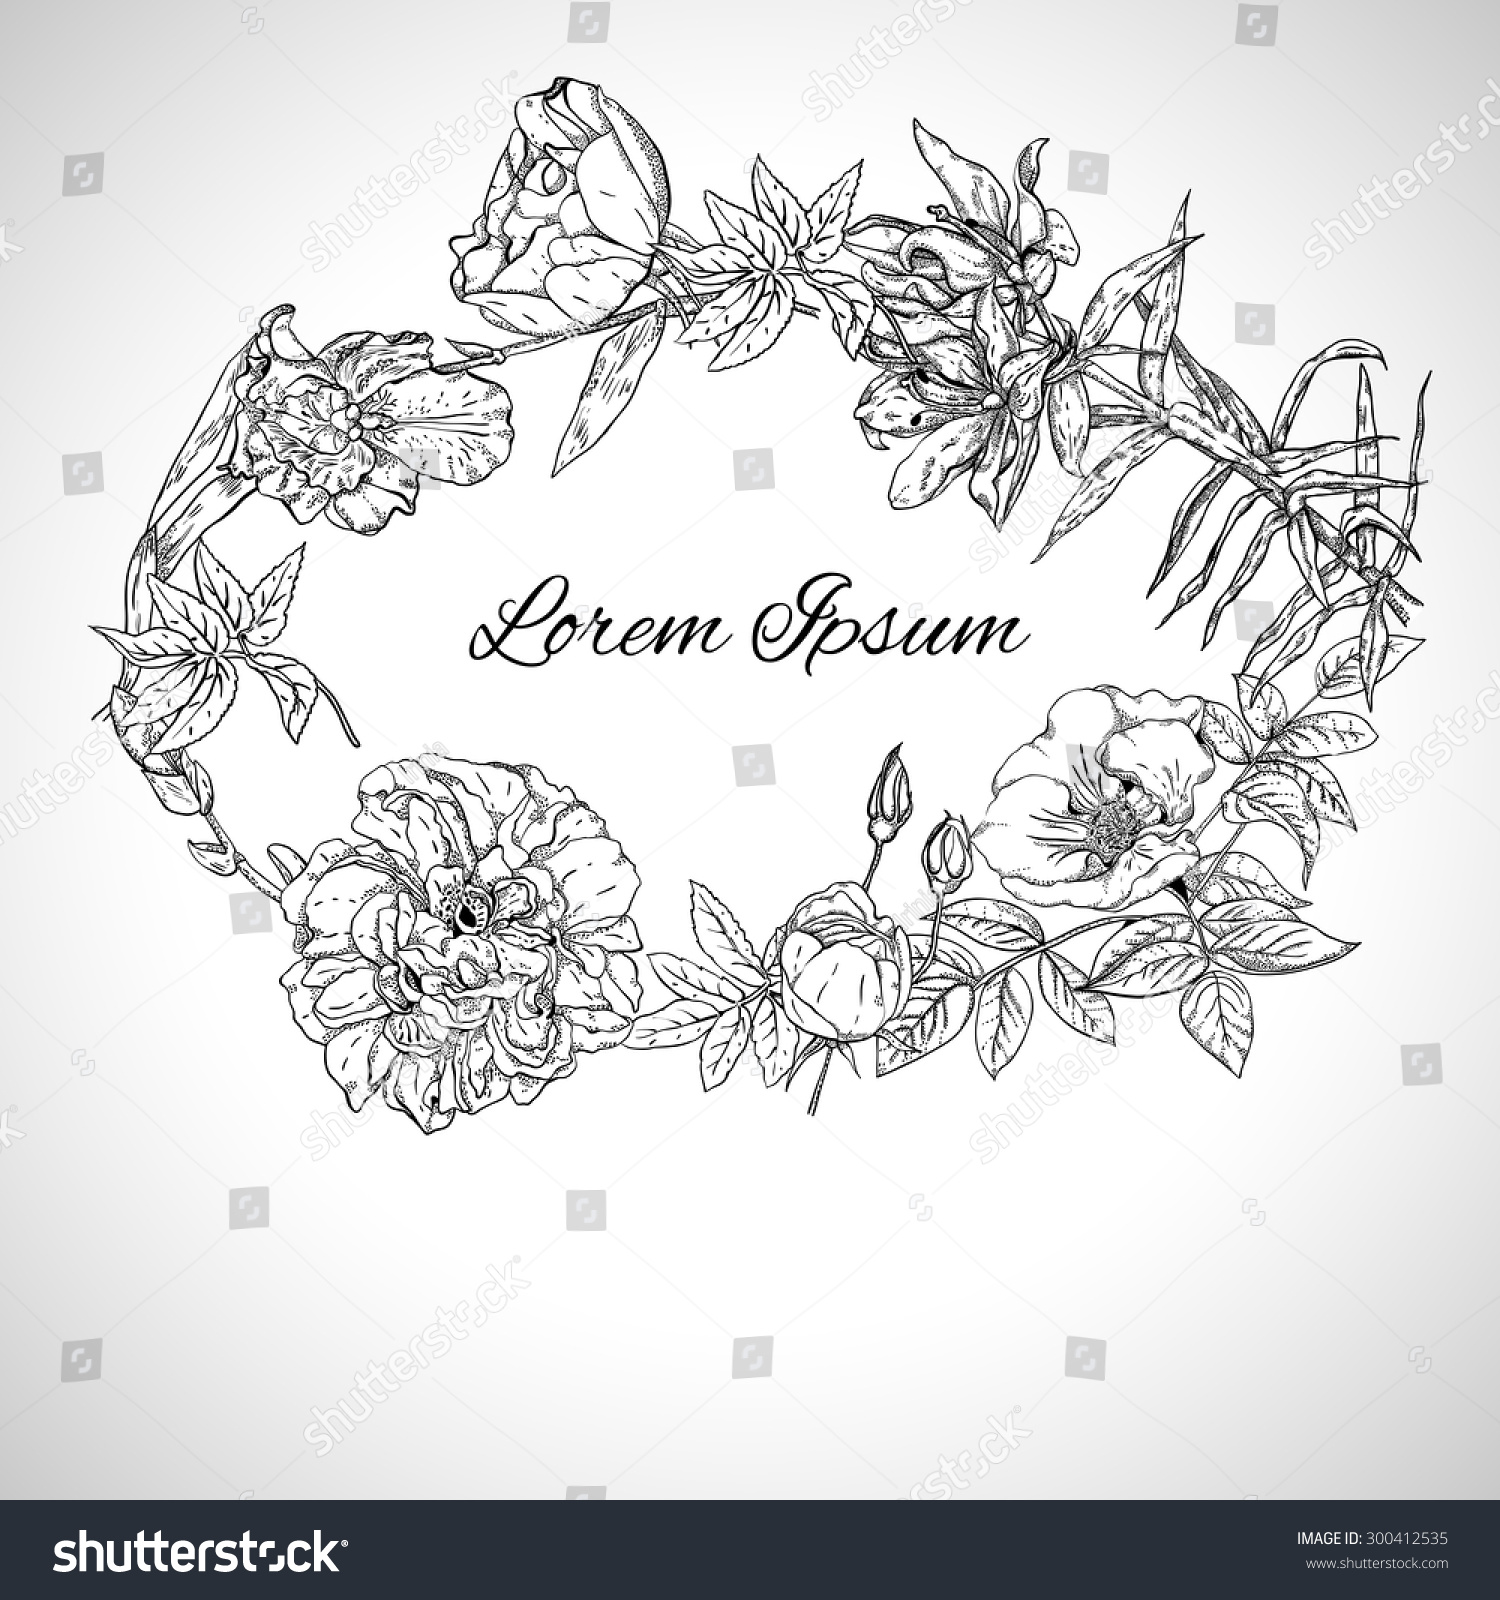 Line Art Text : Wreath flowers space text line art stock vector